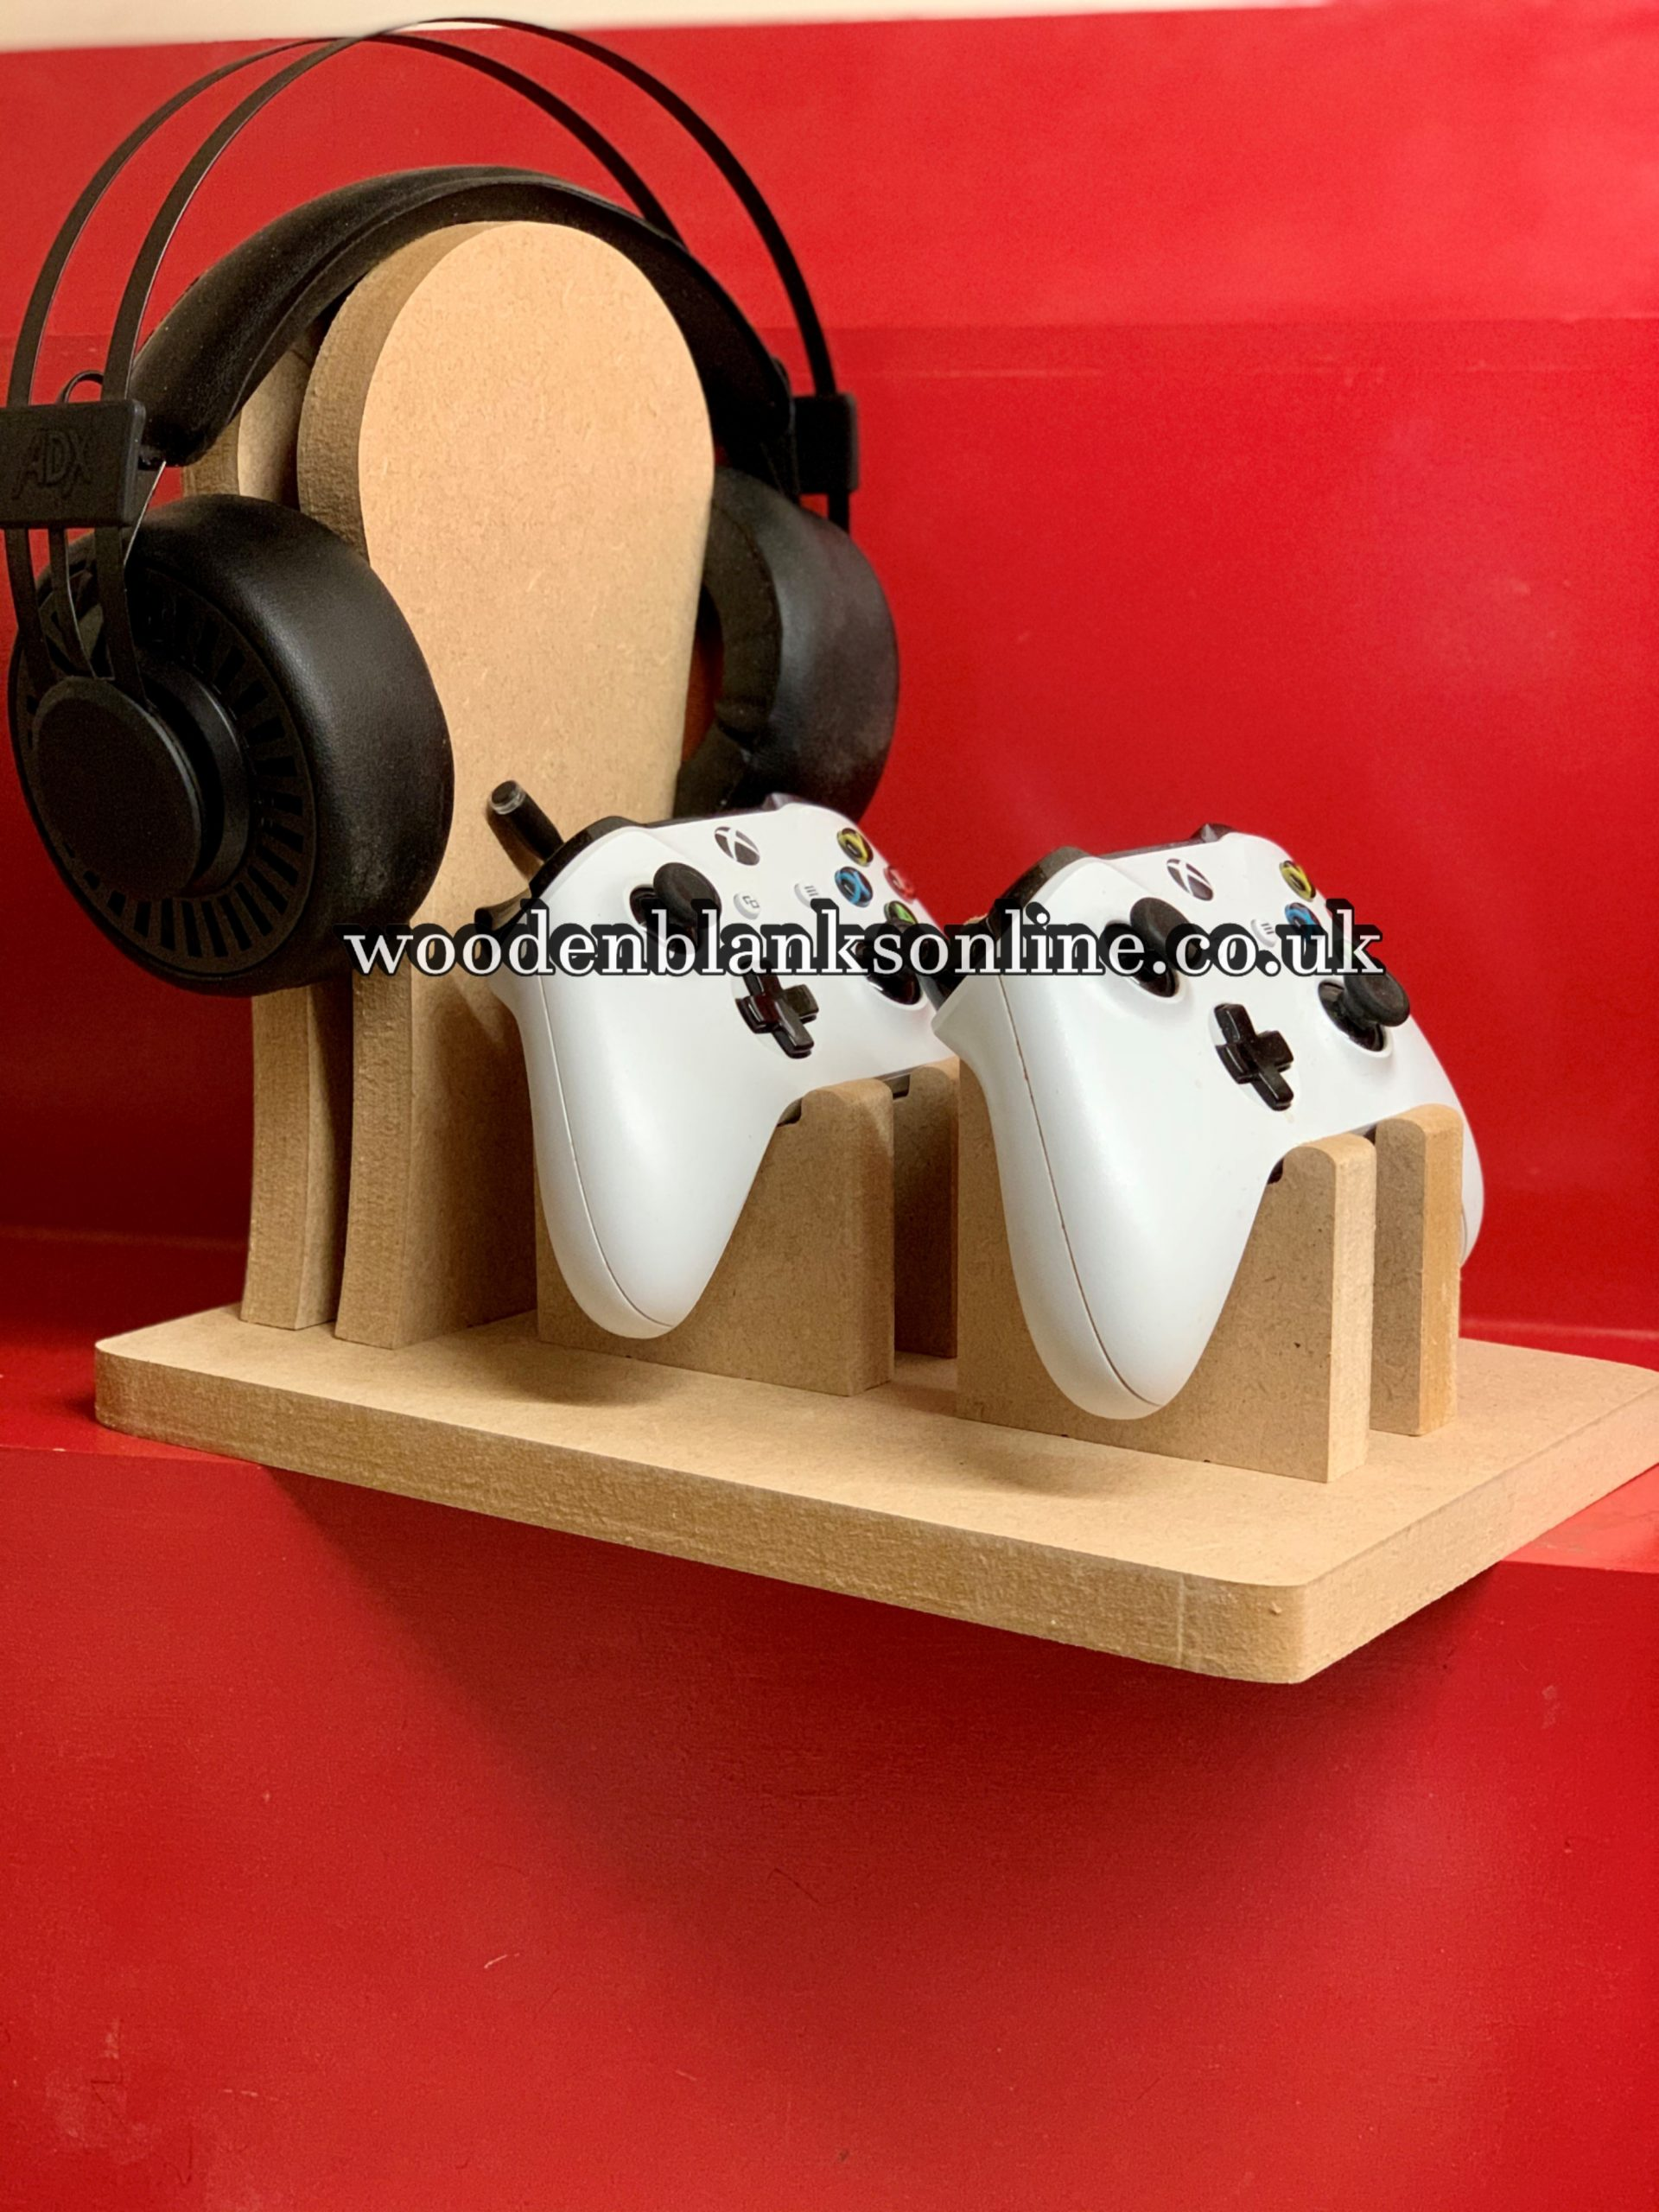 Headset and double controller forward 3